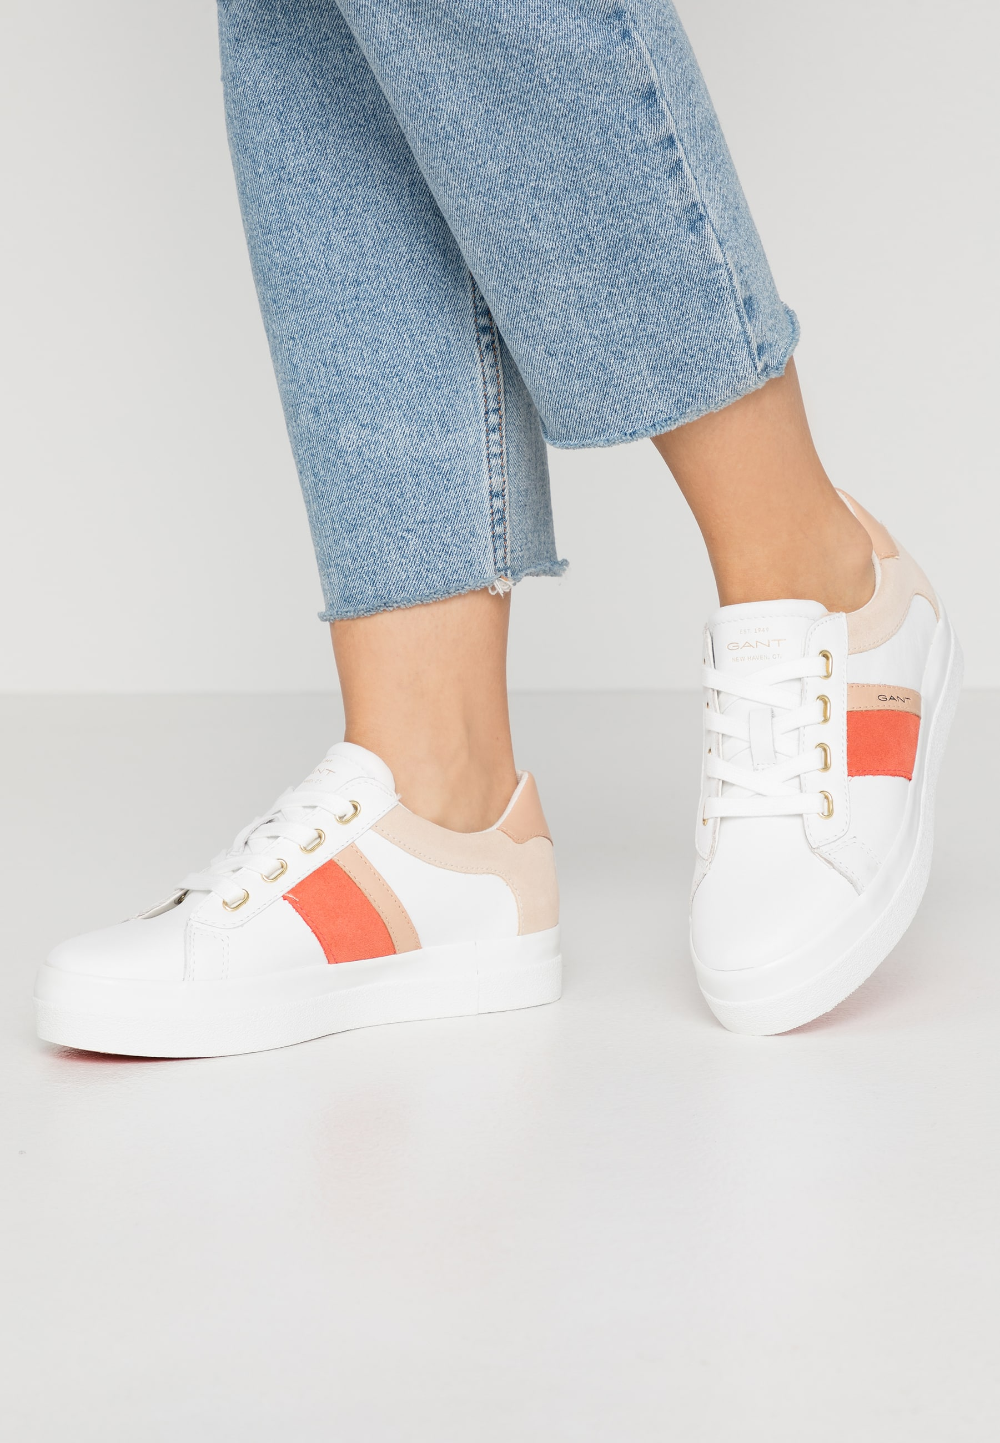 AVONA Sneaker low bright whitecoral @ </p>